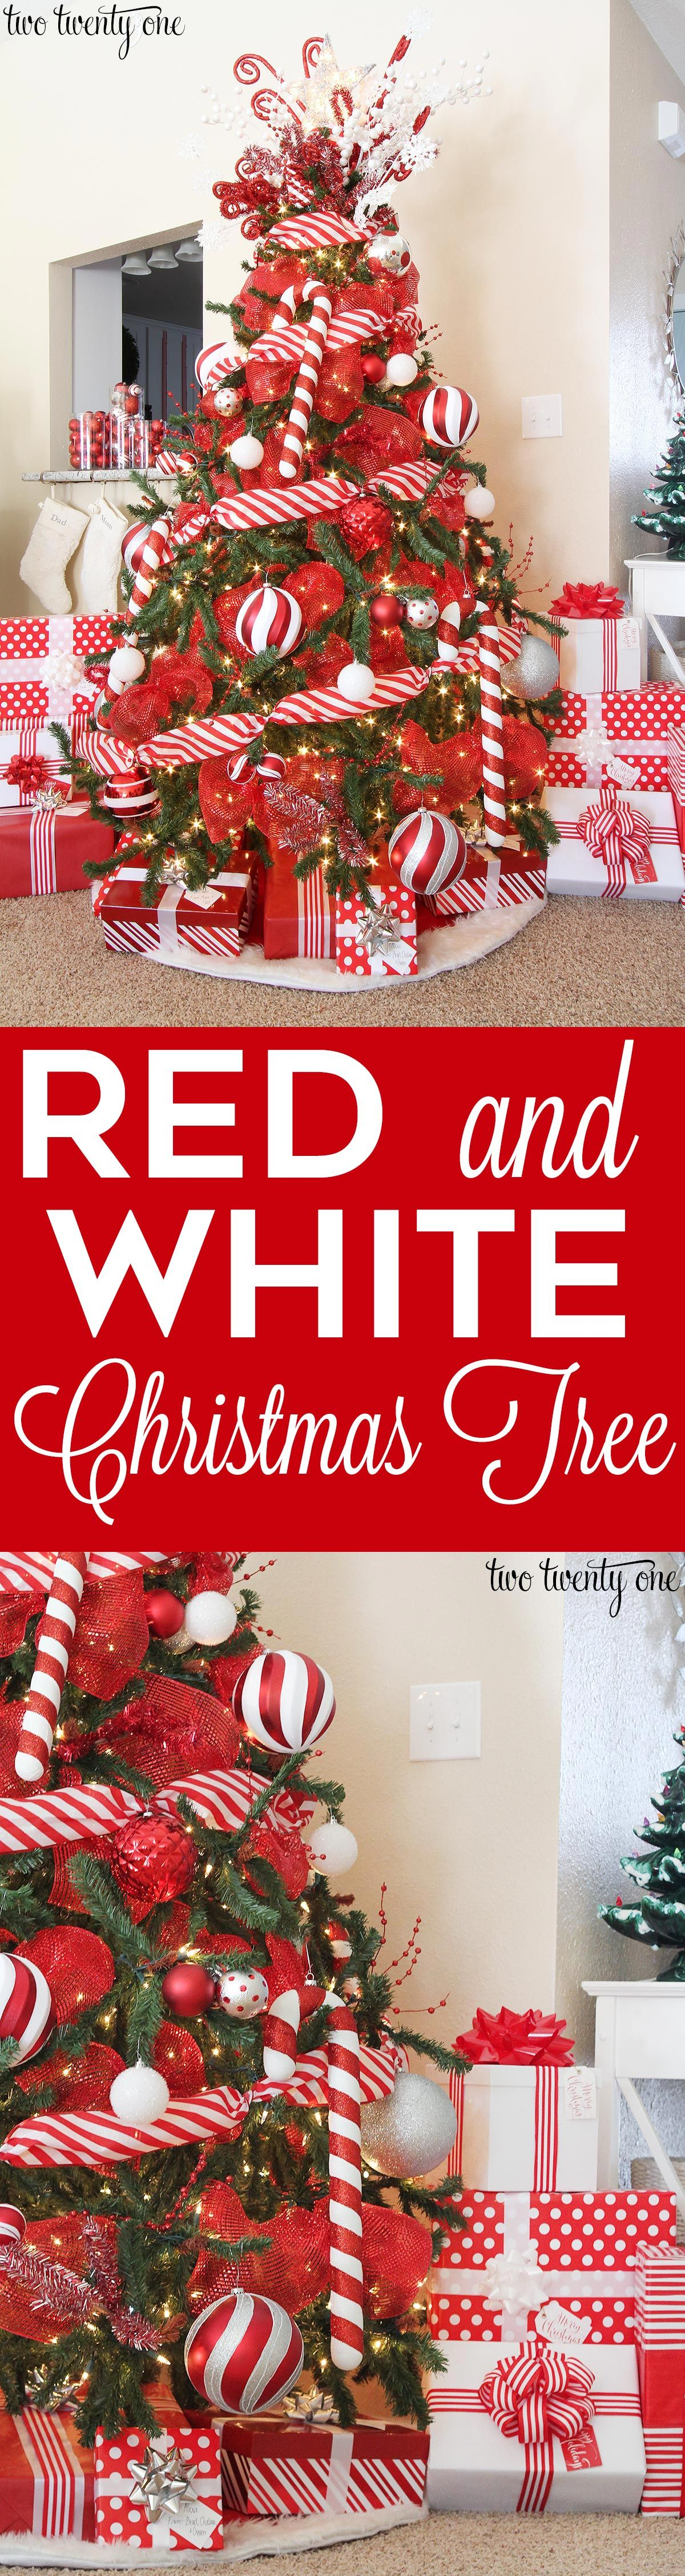 red white christmas tree candy canes and desktop create living accents fun on day for mobile phones hd pics